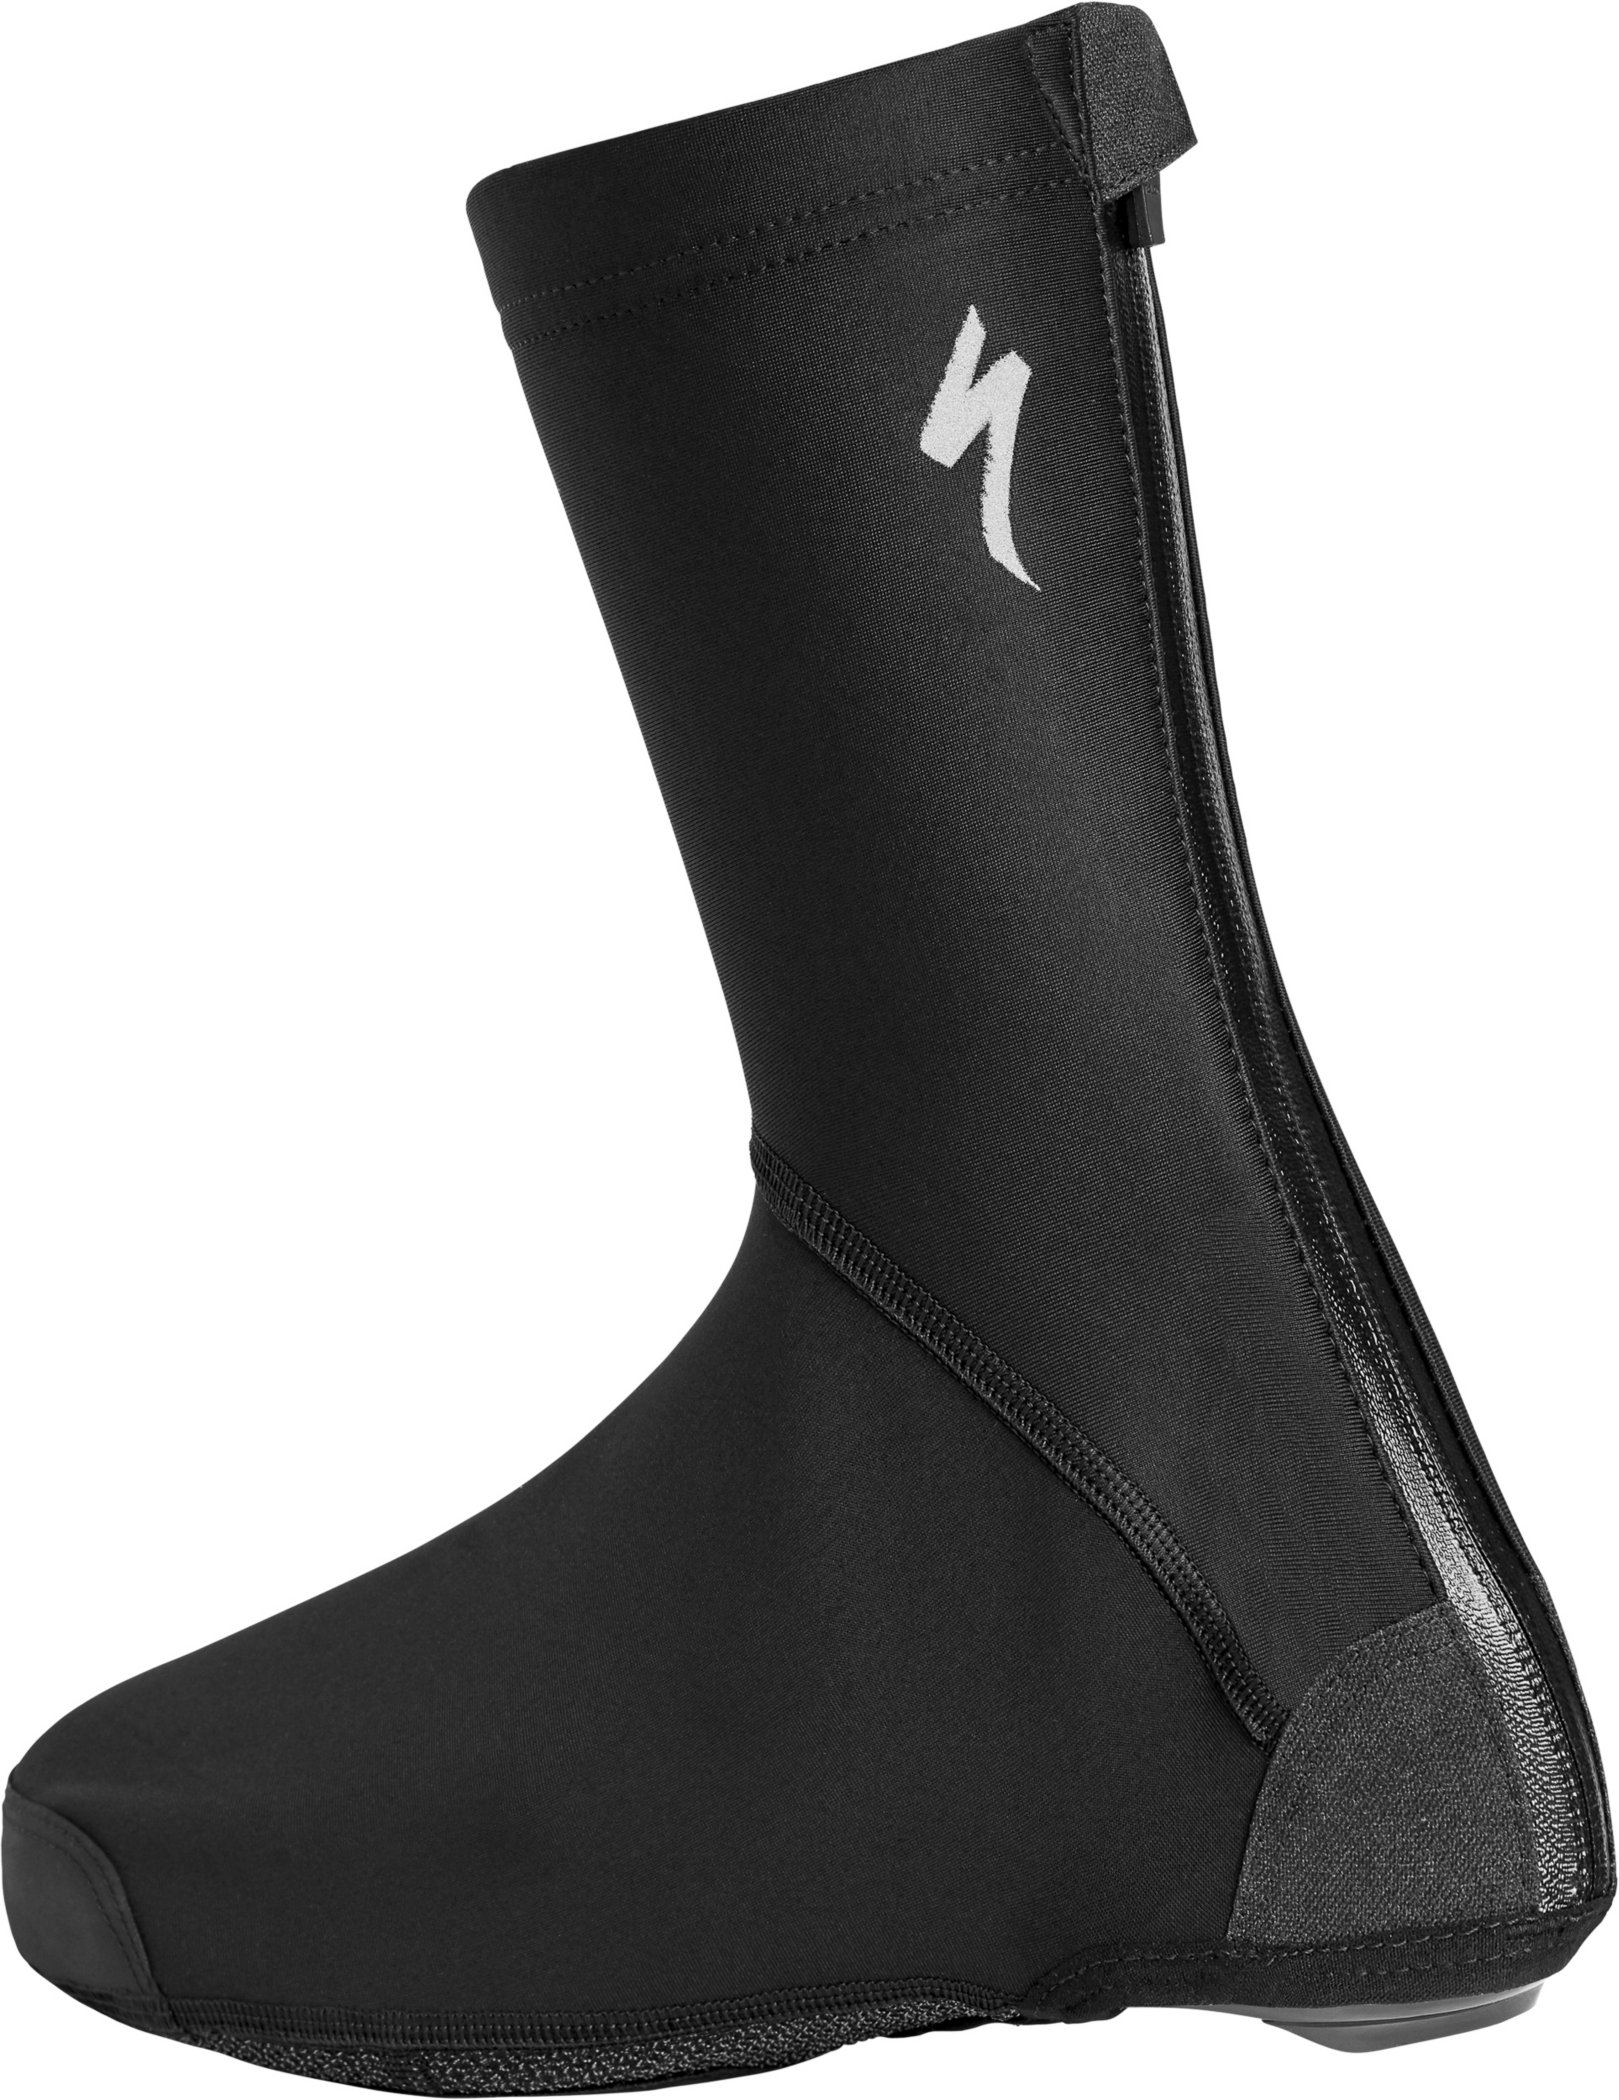 Specialized Element WINDSTOPPER® Shoe Covers Black  (L) 43-44 - Alpha Bikes